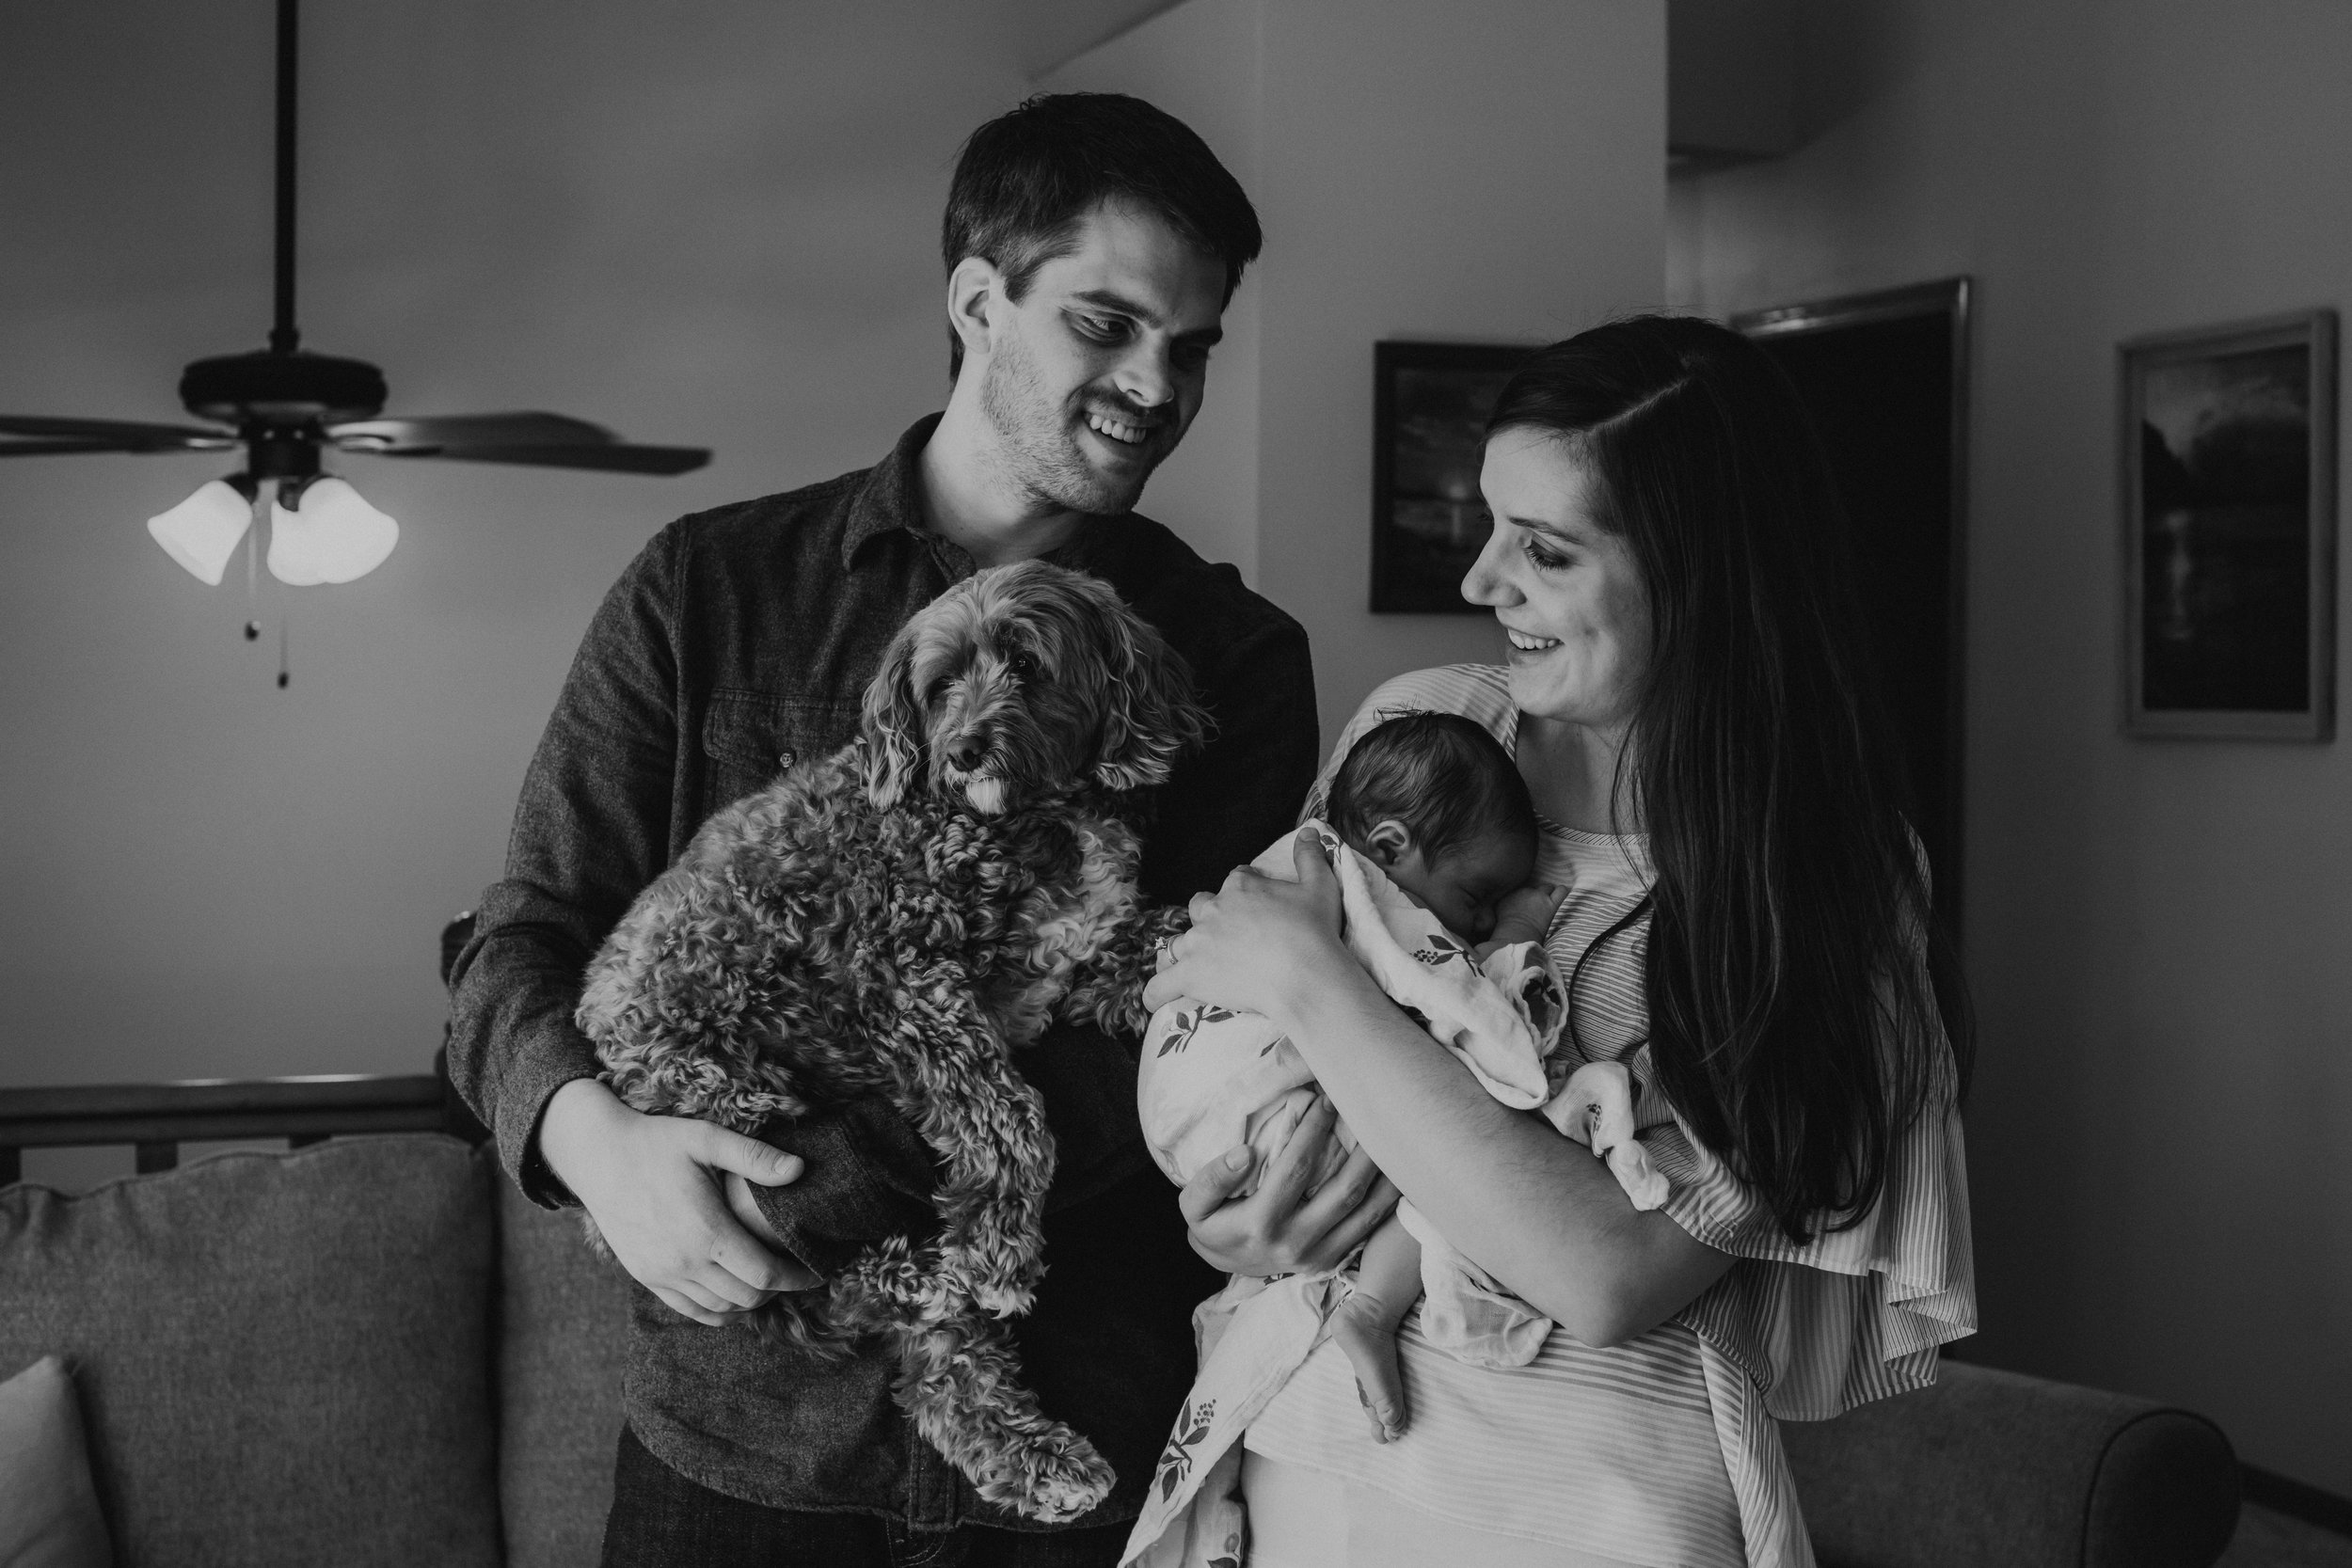 """Cori did an absolutely beautiful job capturing our newborn/family photos. Her passion and talent were so clearly demonstrated and natural in the time we spent with her. We will forever treasure her photos and would, without a doubt, work with her in the future to make sure our special moments are captured so perfectly!"" - Jamie"